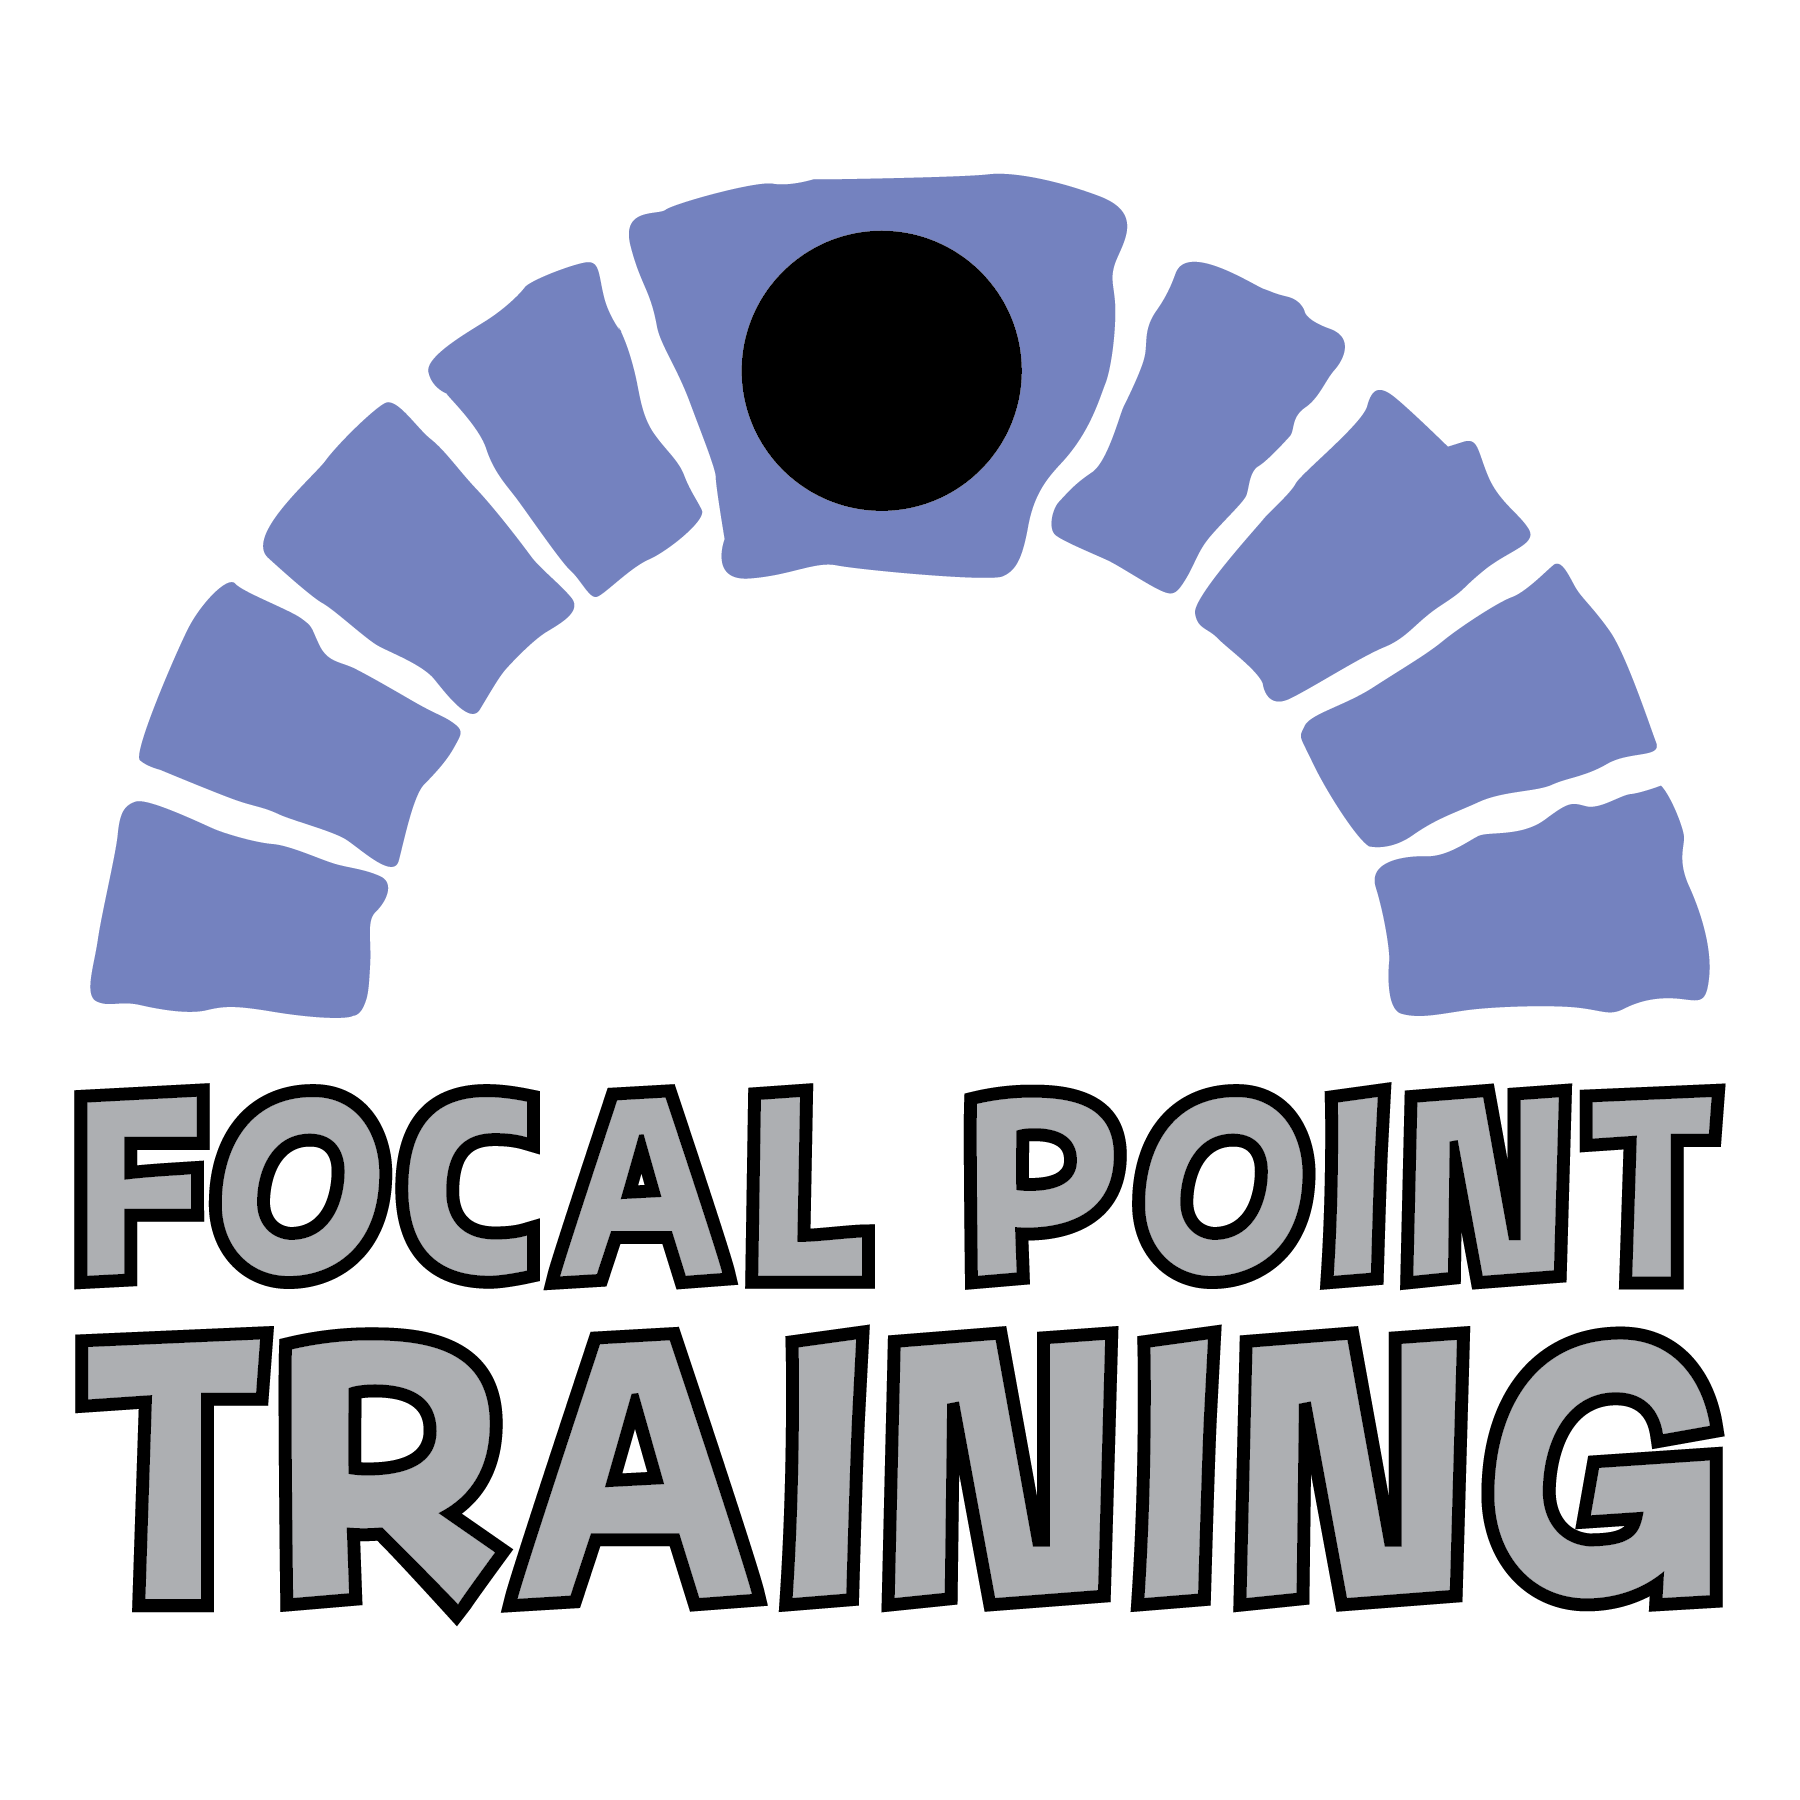 Focal Point Training